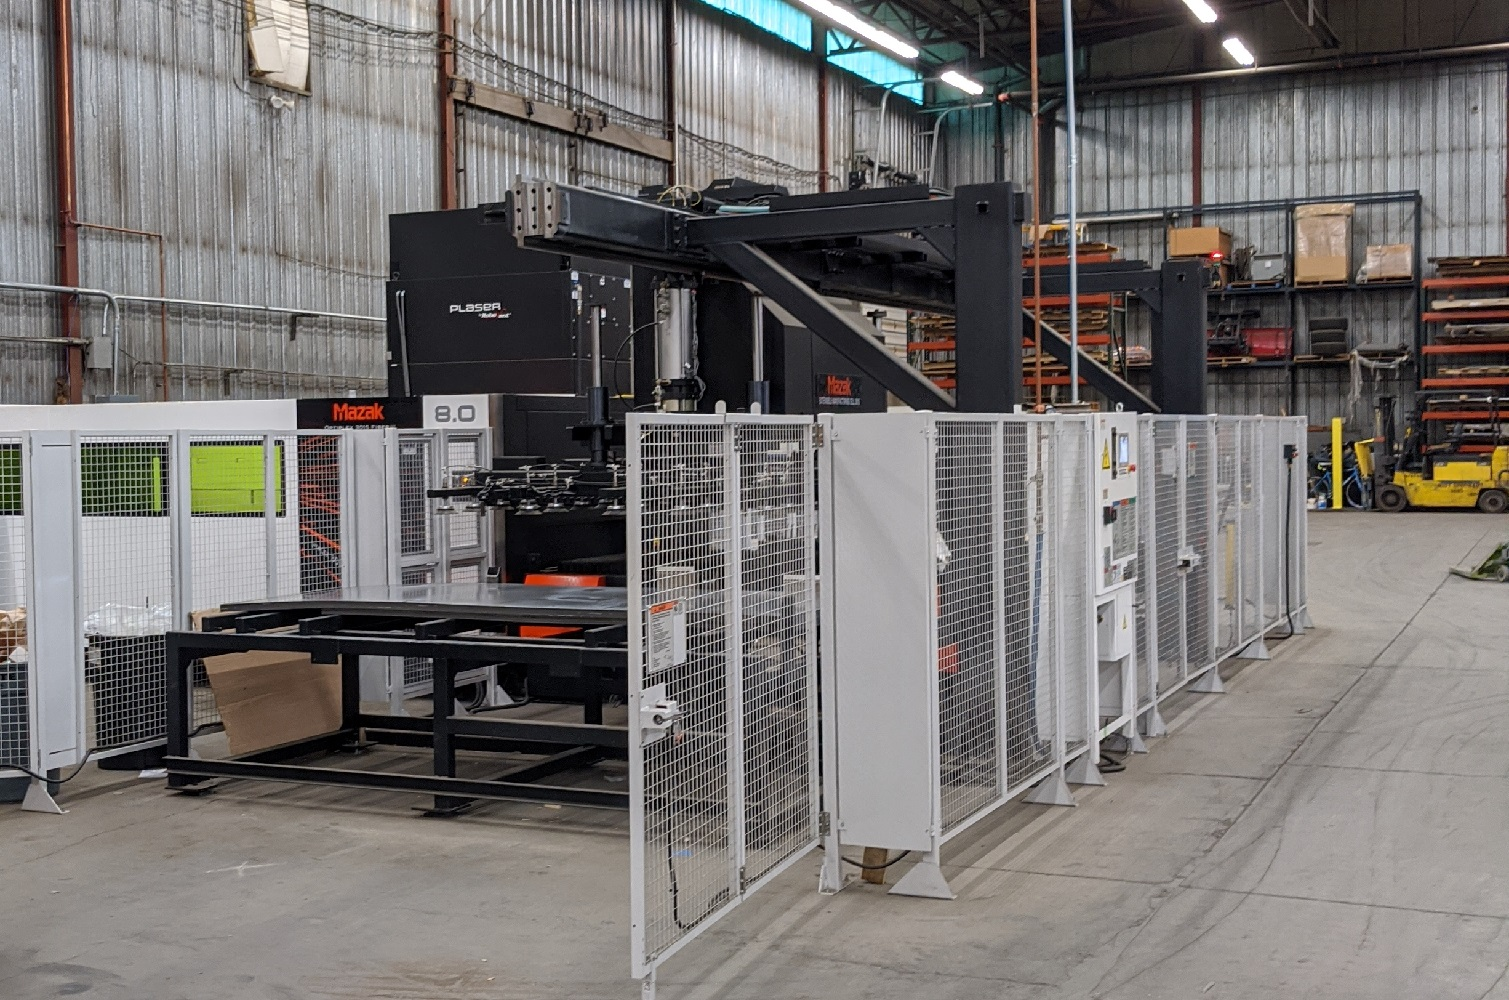 "Mazak 8 KW fiber laser Brand new as of 2019, this auto loading/unloading laser has the ability to run unattended giving Abasco the ability to keep producing products even in our sleep. Its versatile cutting range includes up to 1"" stainless and carbon steel as well as ½"" brass. It excels at lighter gauge materials with some cutting speeds exceeding 2,000 inches per minute."